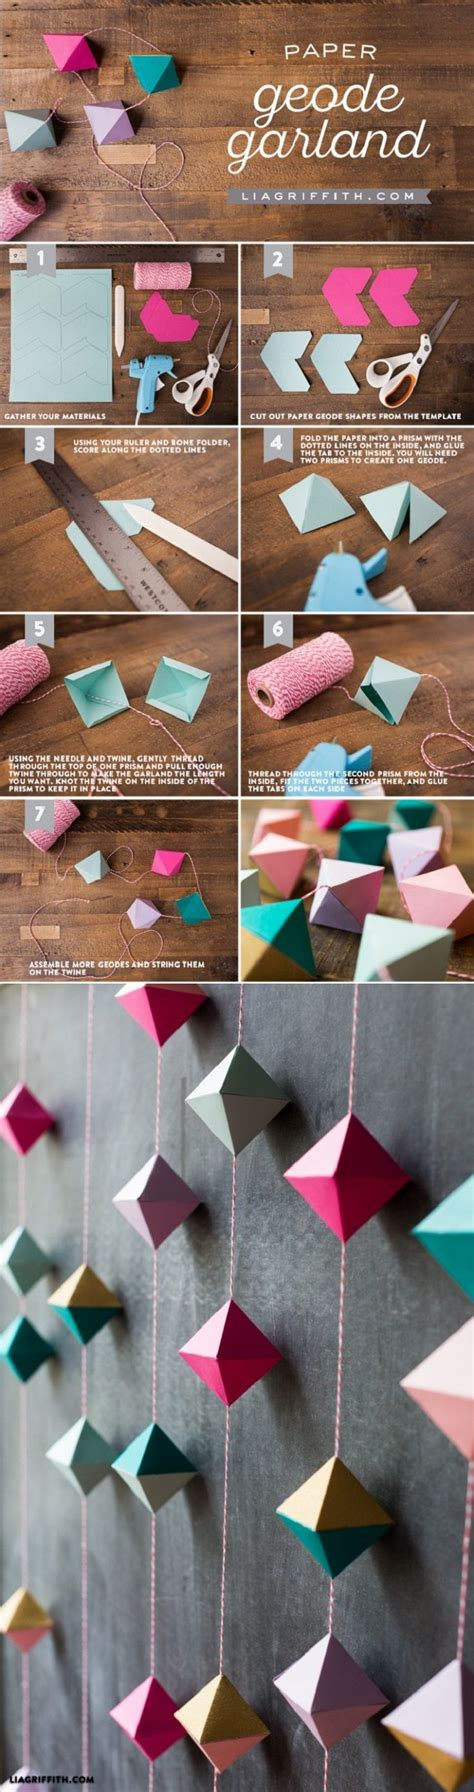 25+ best ideas about Paper Garlands on Pinterest | Party ...